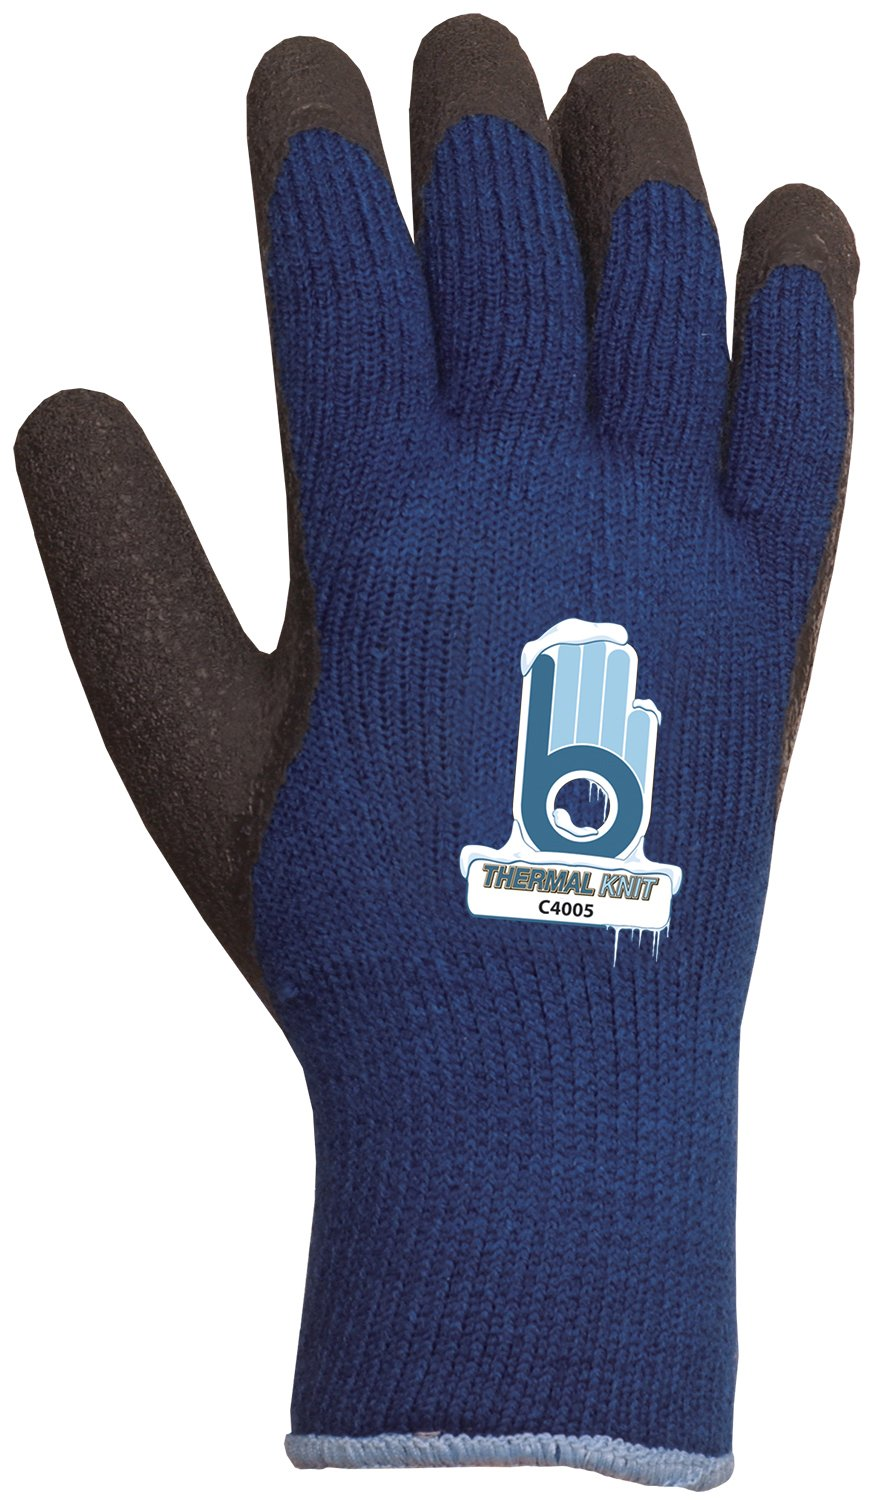 Bellingham C4005M Extra Heavy-Duty Insulated Thermal Knit Work Glove, Heavy-Duty Acrylic Liner and Black Rubber Palm, Medium, Blue